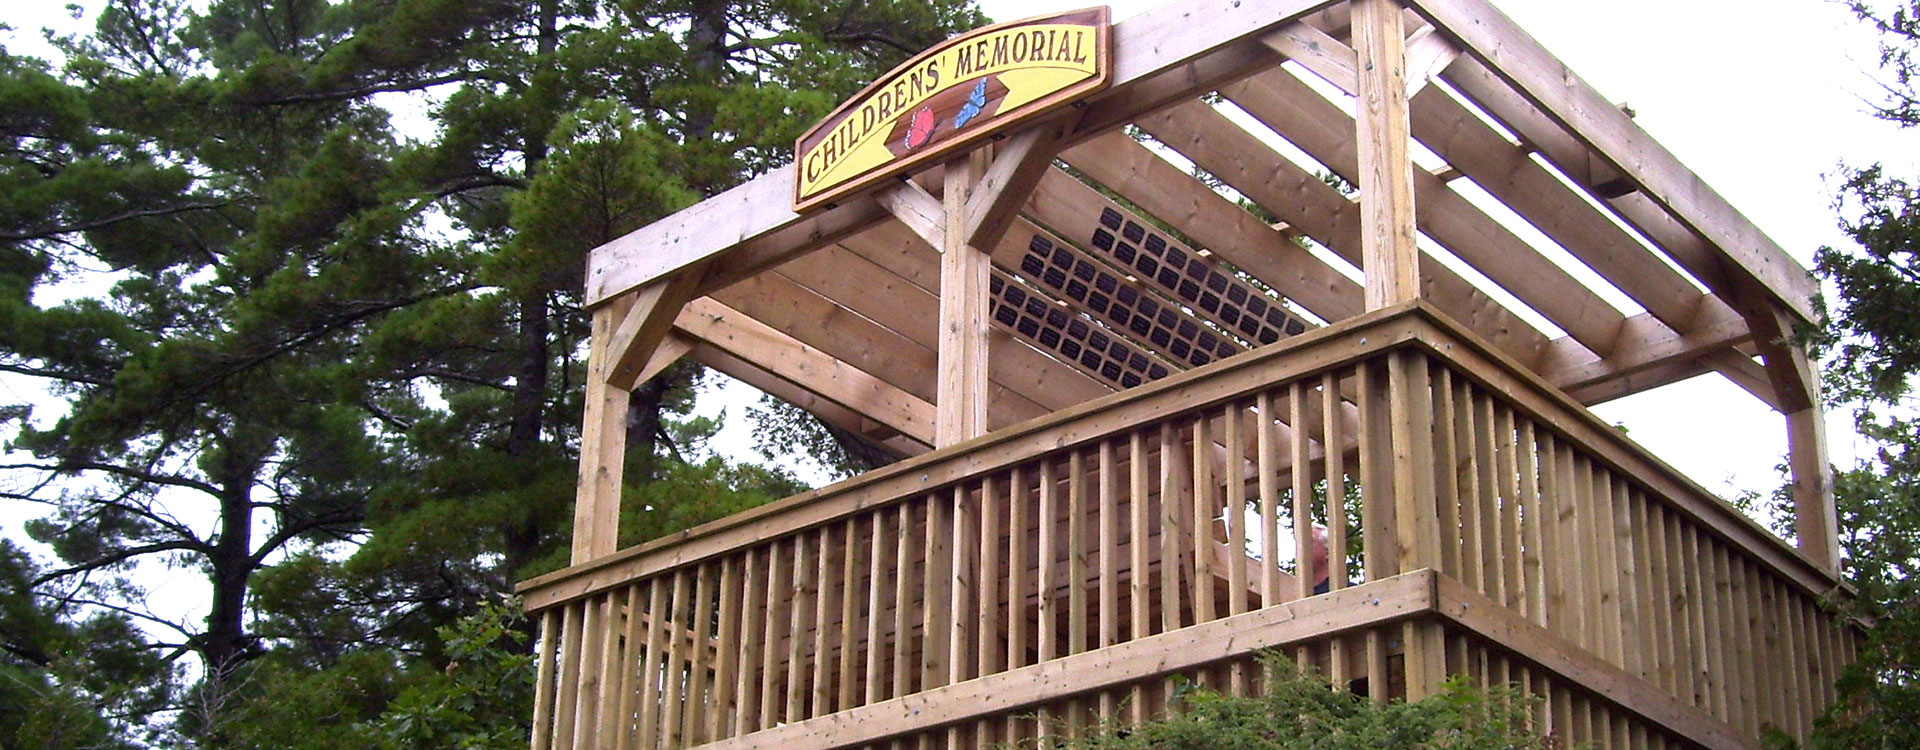 Community dedications, Children's Gazebo at Muskoka Wharf overlooking Lake Muskoka